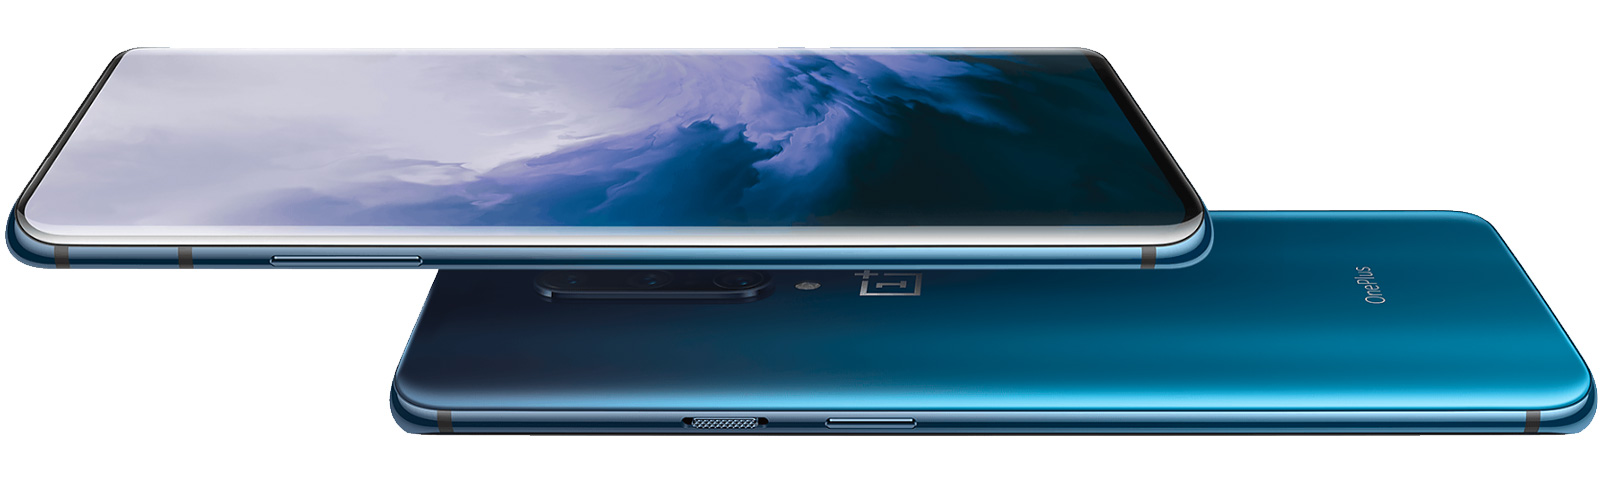 OnePlus 7 Pro teardown reveals interesting details